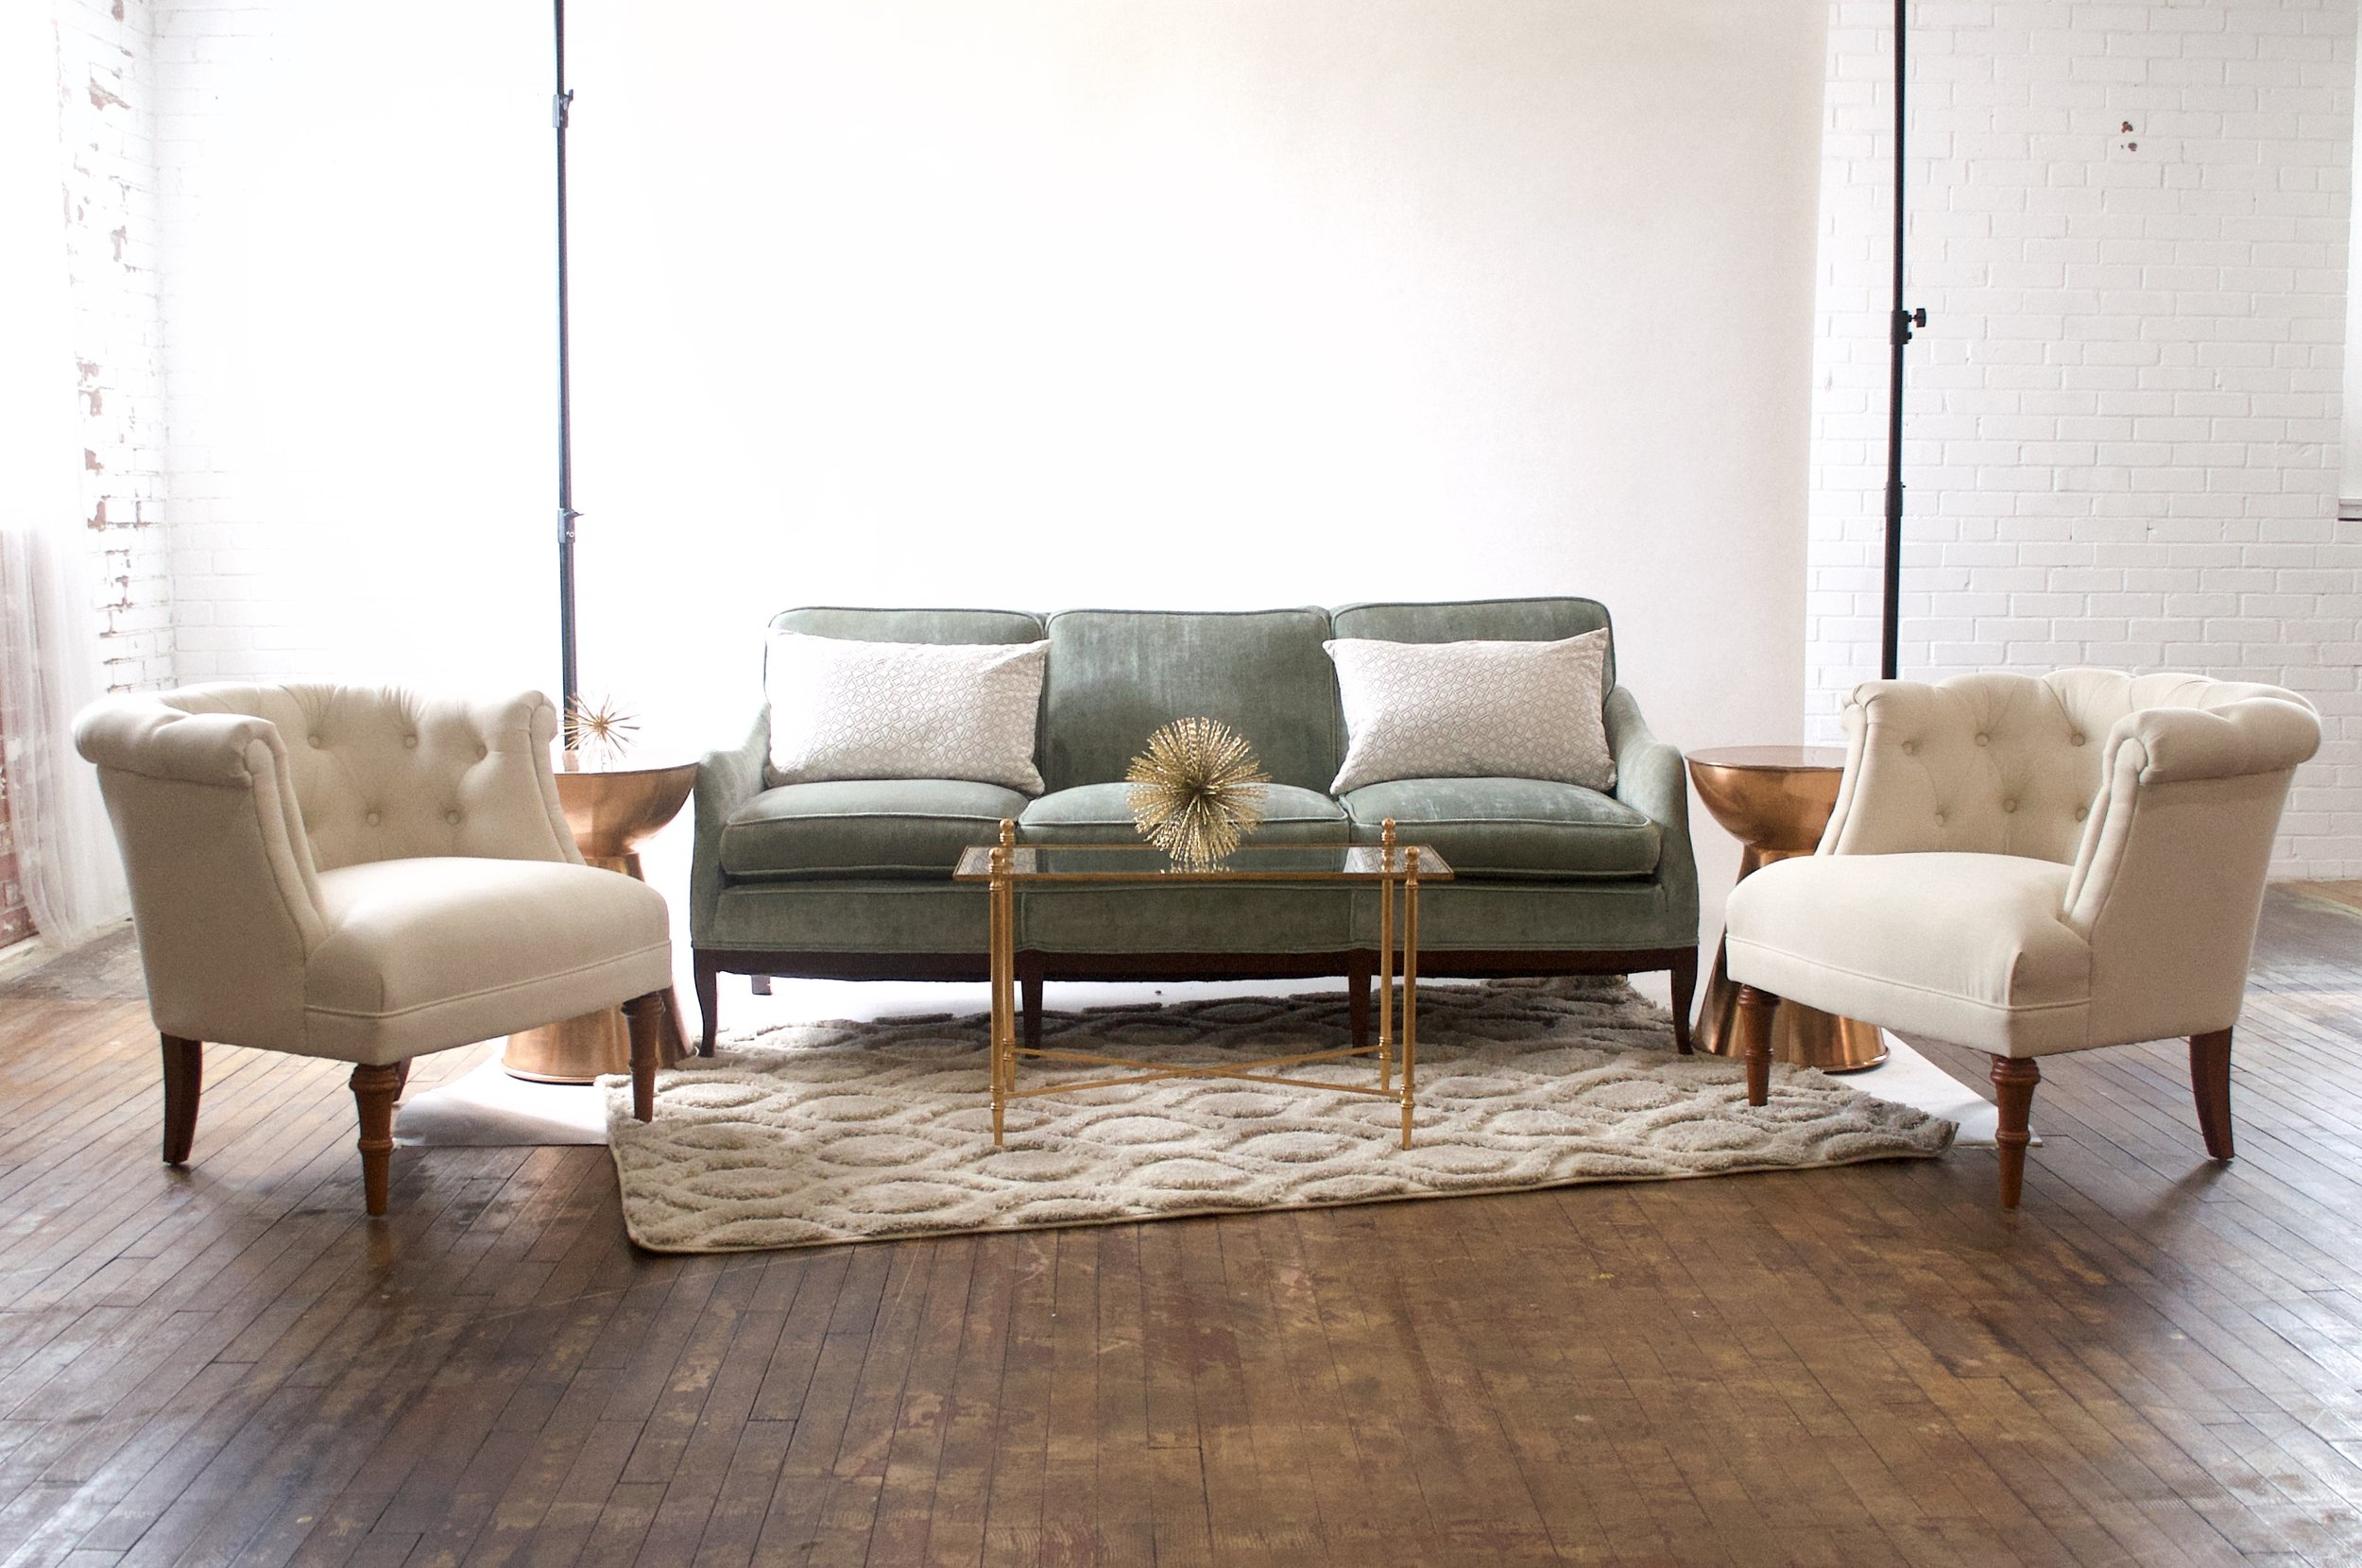 Emily and Bonnie Grand - featuring morroccan cream rug, gold and glass rectangular table and copper side tables